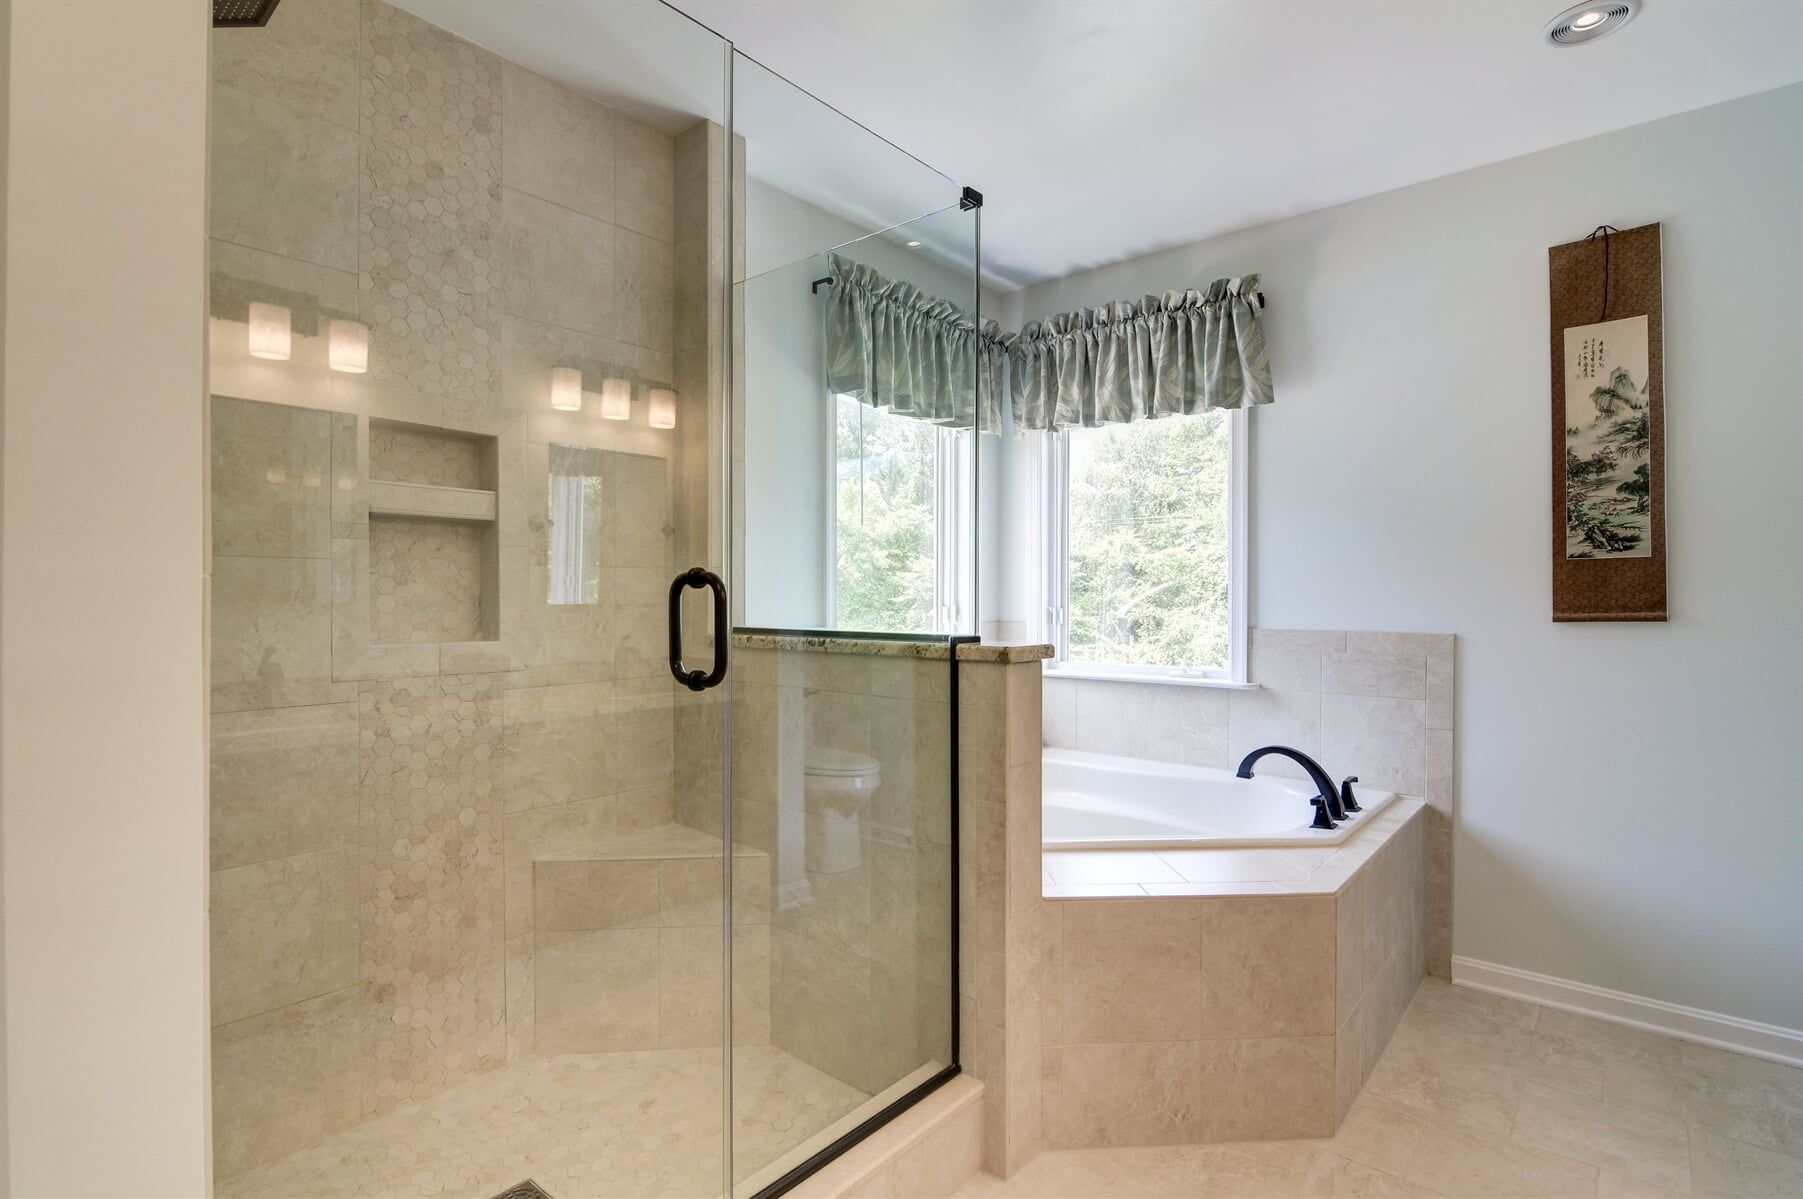 Bathroom Remodeling In North Beach Md By Southern Maryland Kitchen Bath Floors Design Floor Design Bathrooms Remodel Remodel [ jpg ]